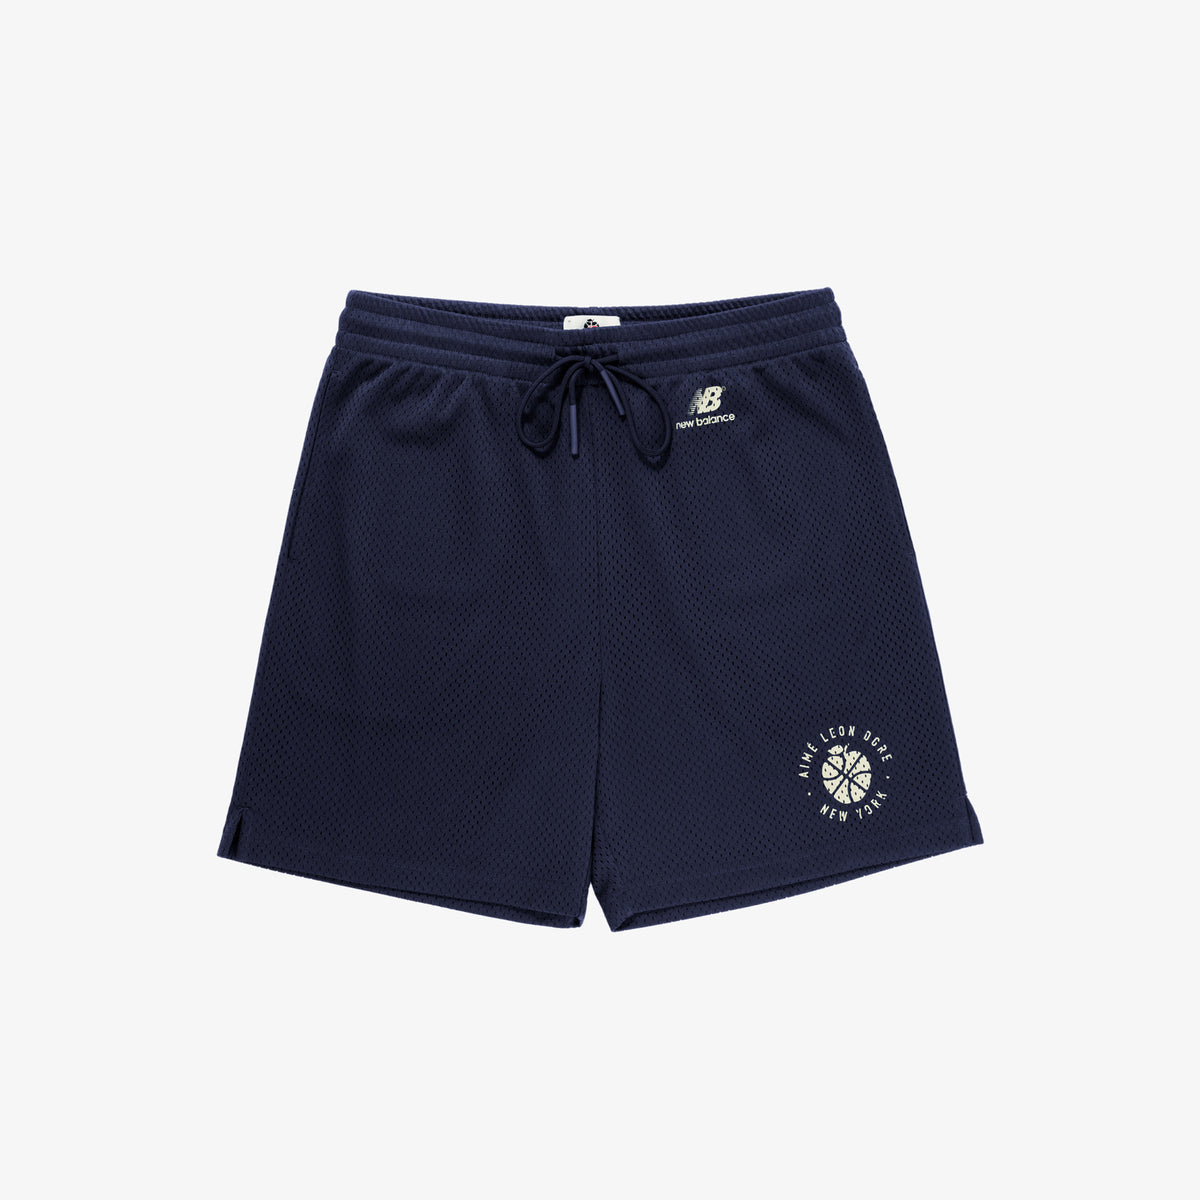 ALD / New Balance Gym Shorts